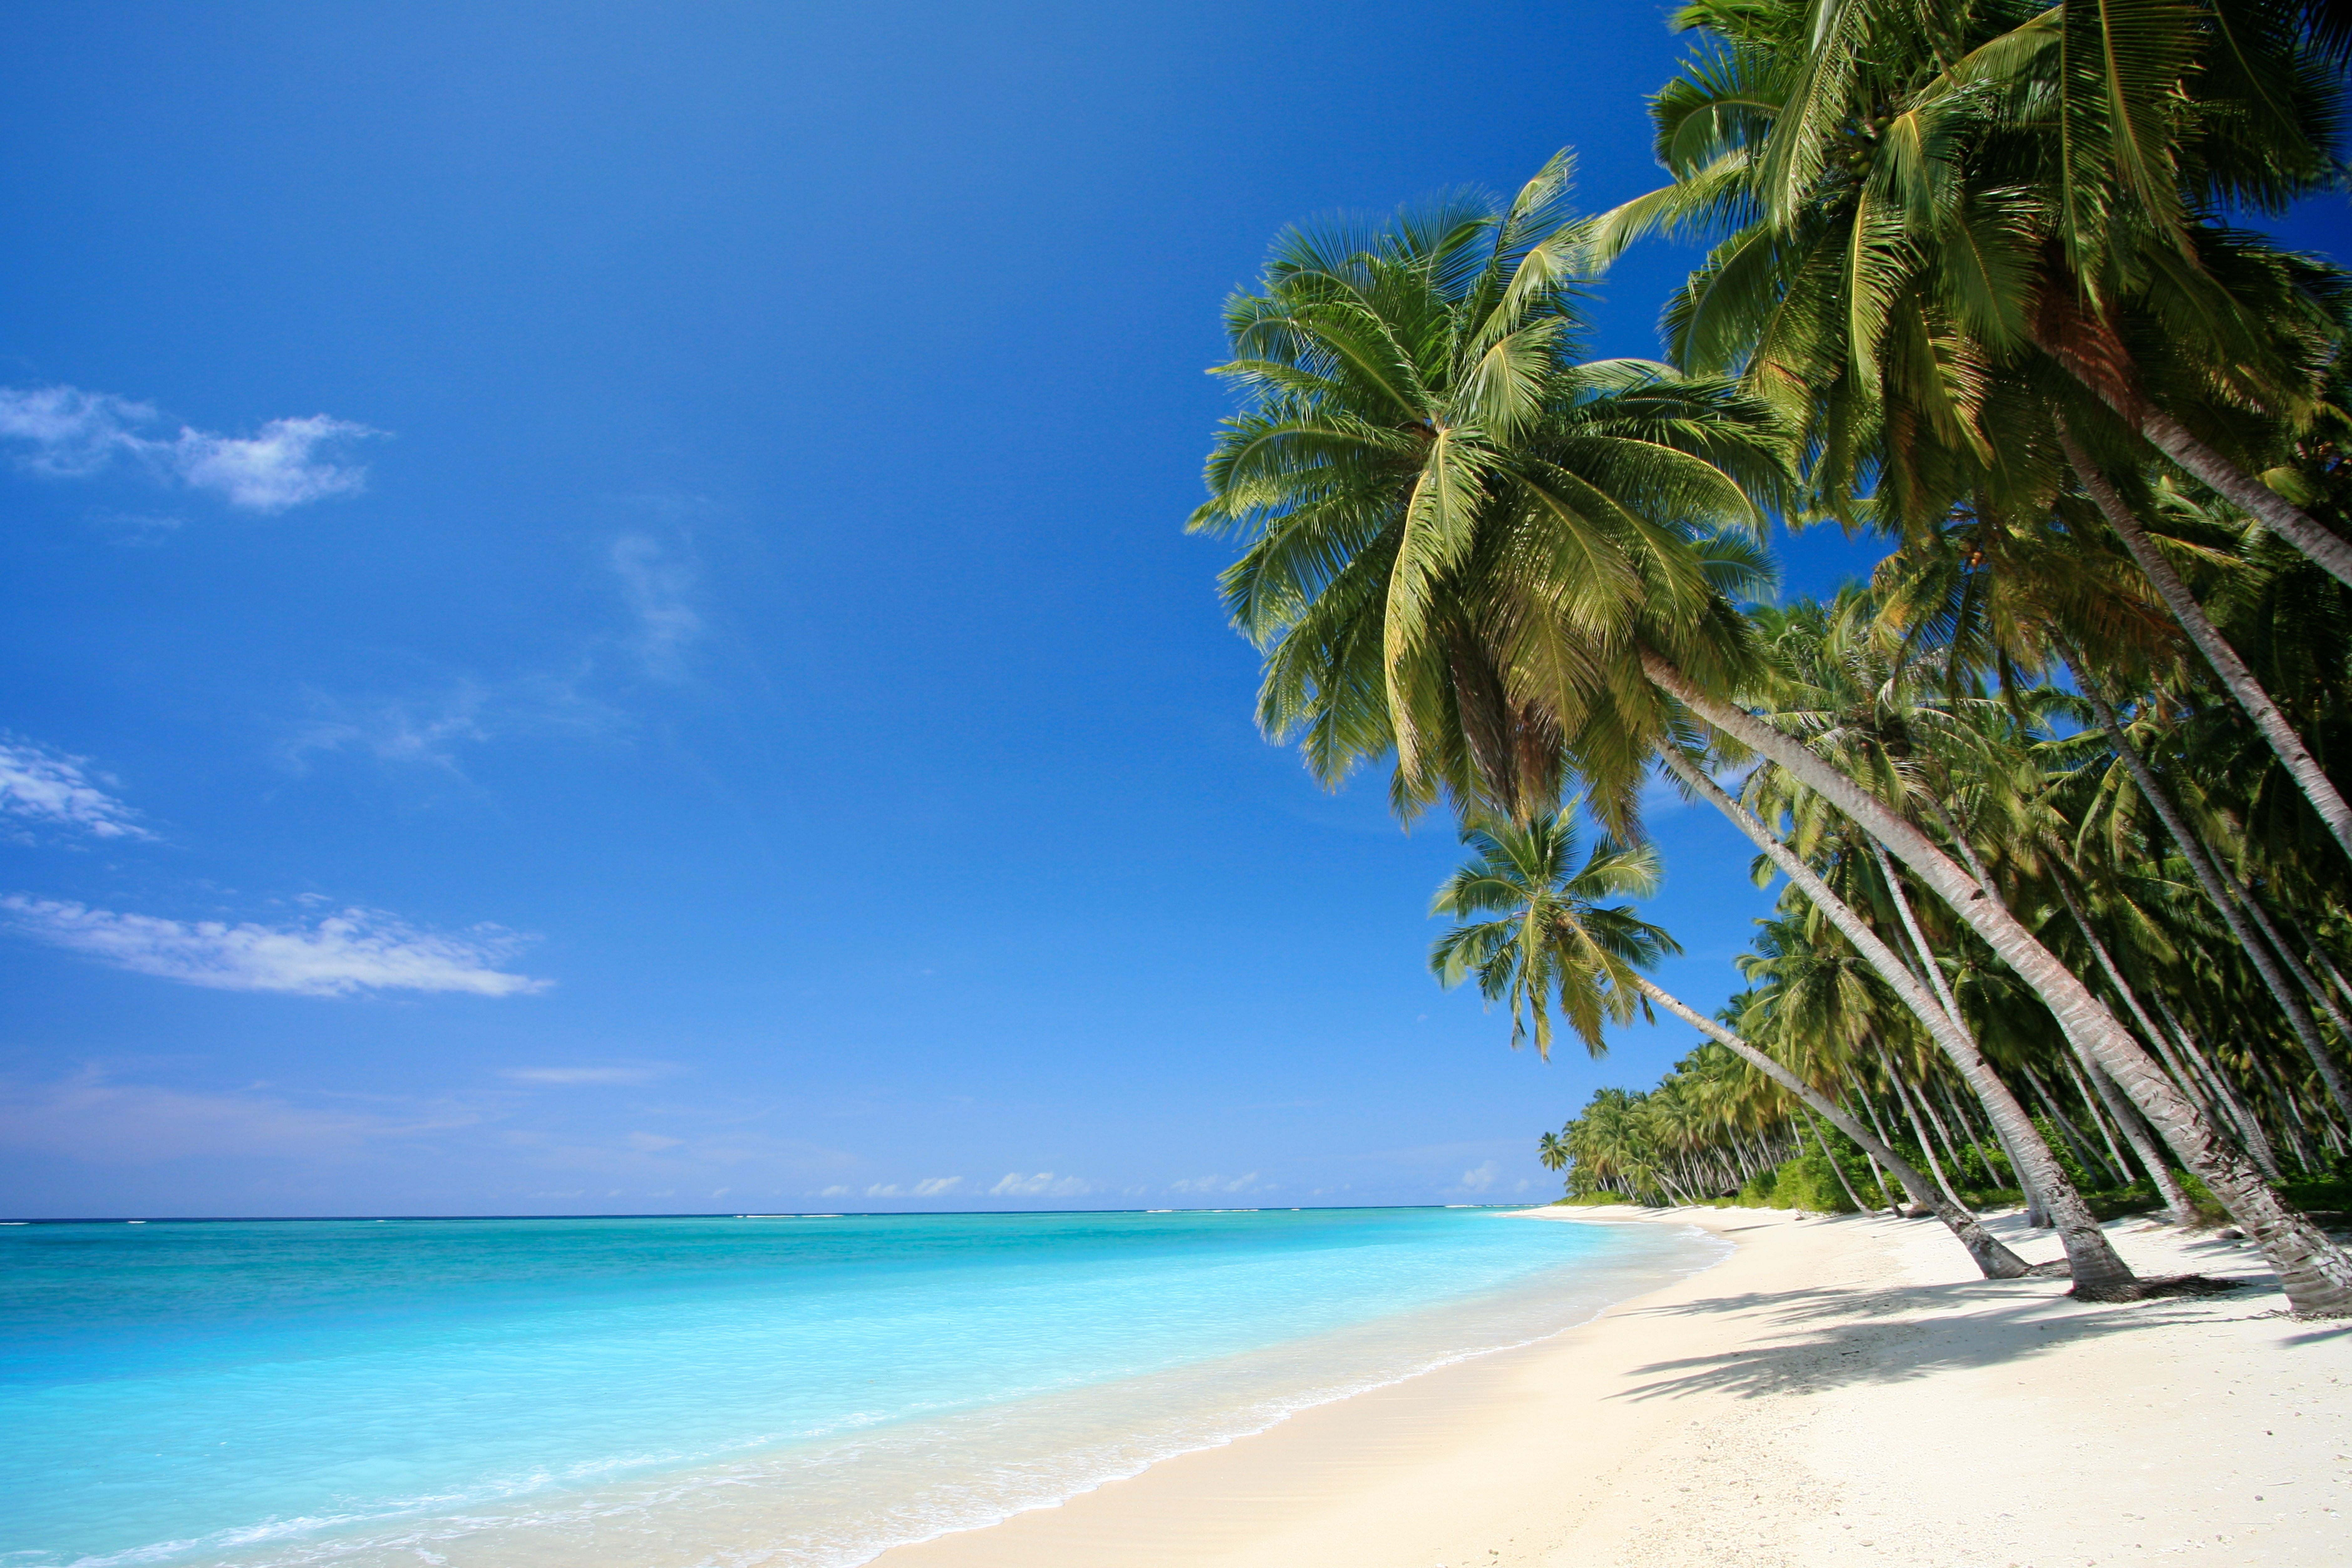 Beach Screensaver wallpaper Tropical Beach Screensaver hd wallpaper 7512x5008